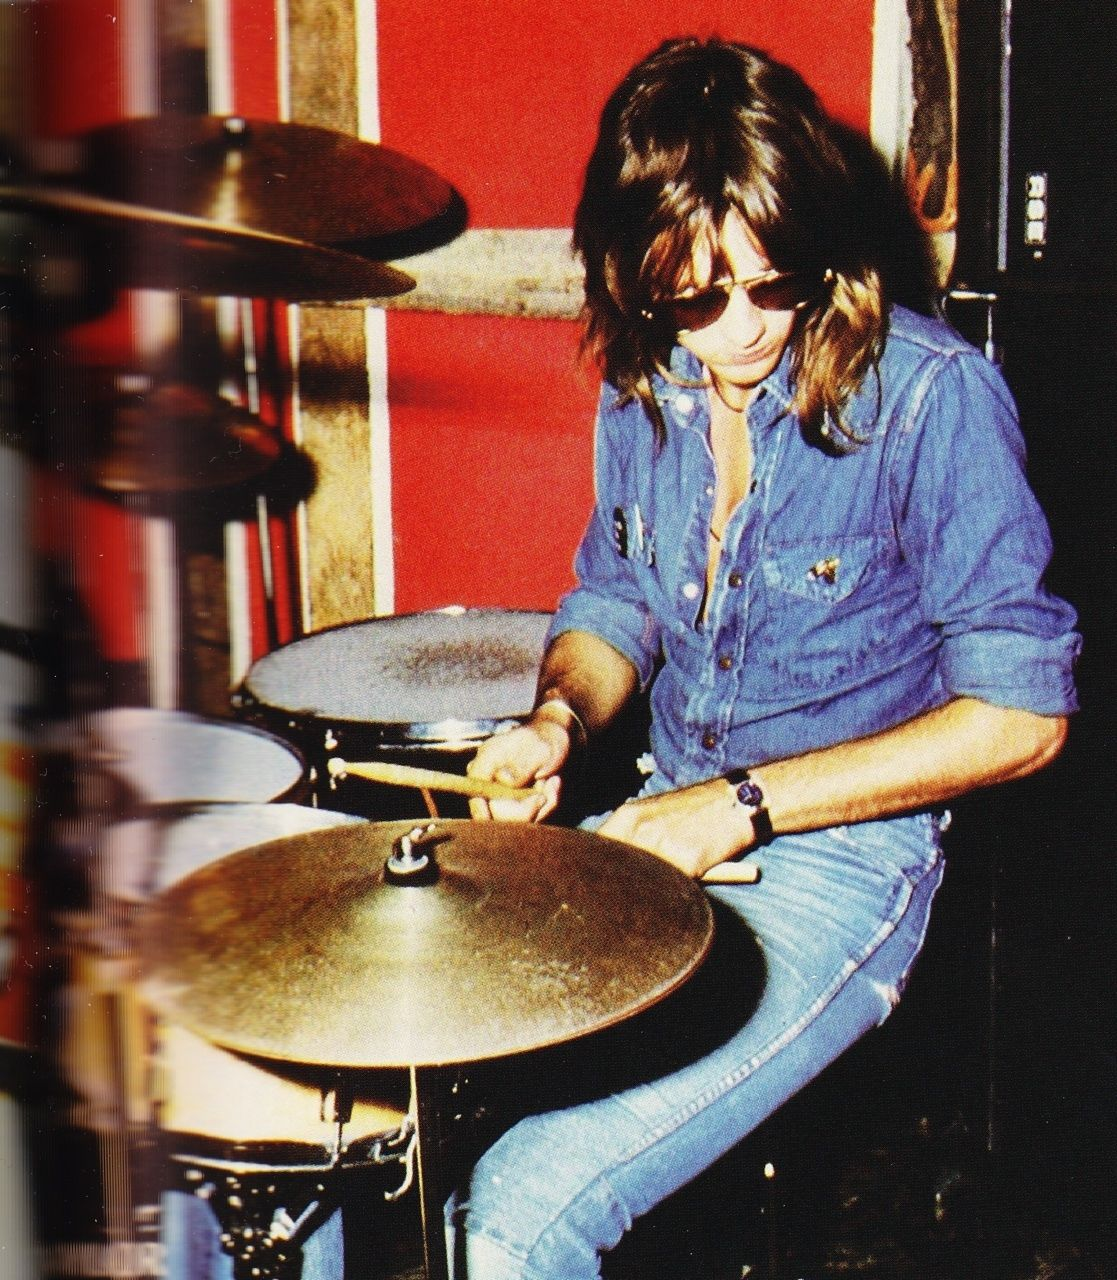 Pin By Juanakirchner On Roger Taylor Roger Taylor Queen Queen Drummer Queen Photos